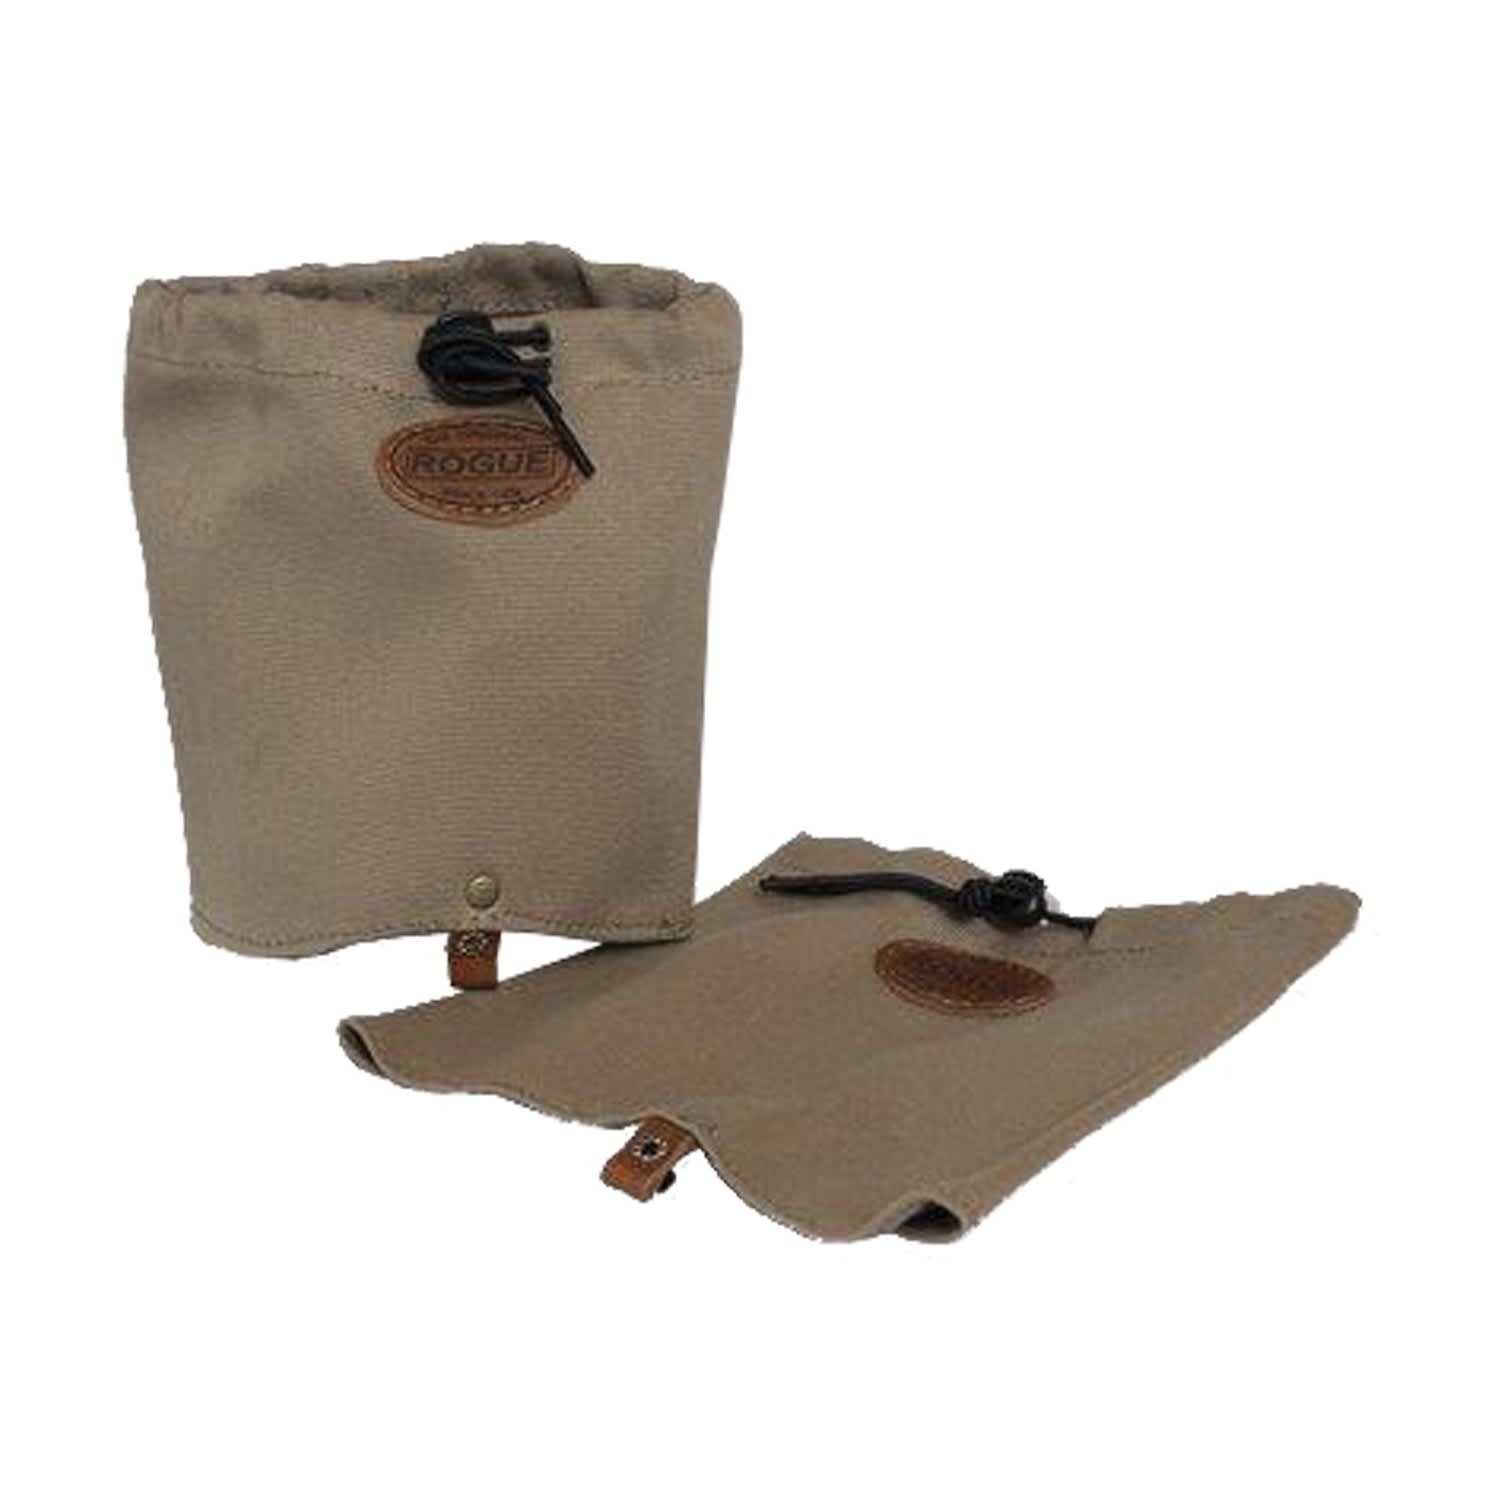 Rogue Short Canvas Gaiters